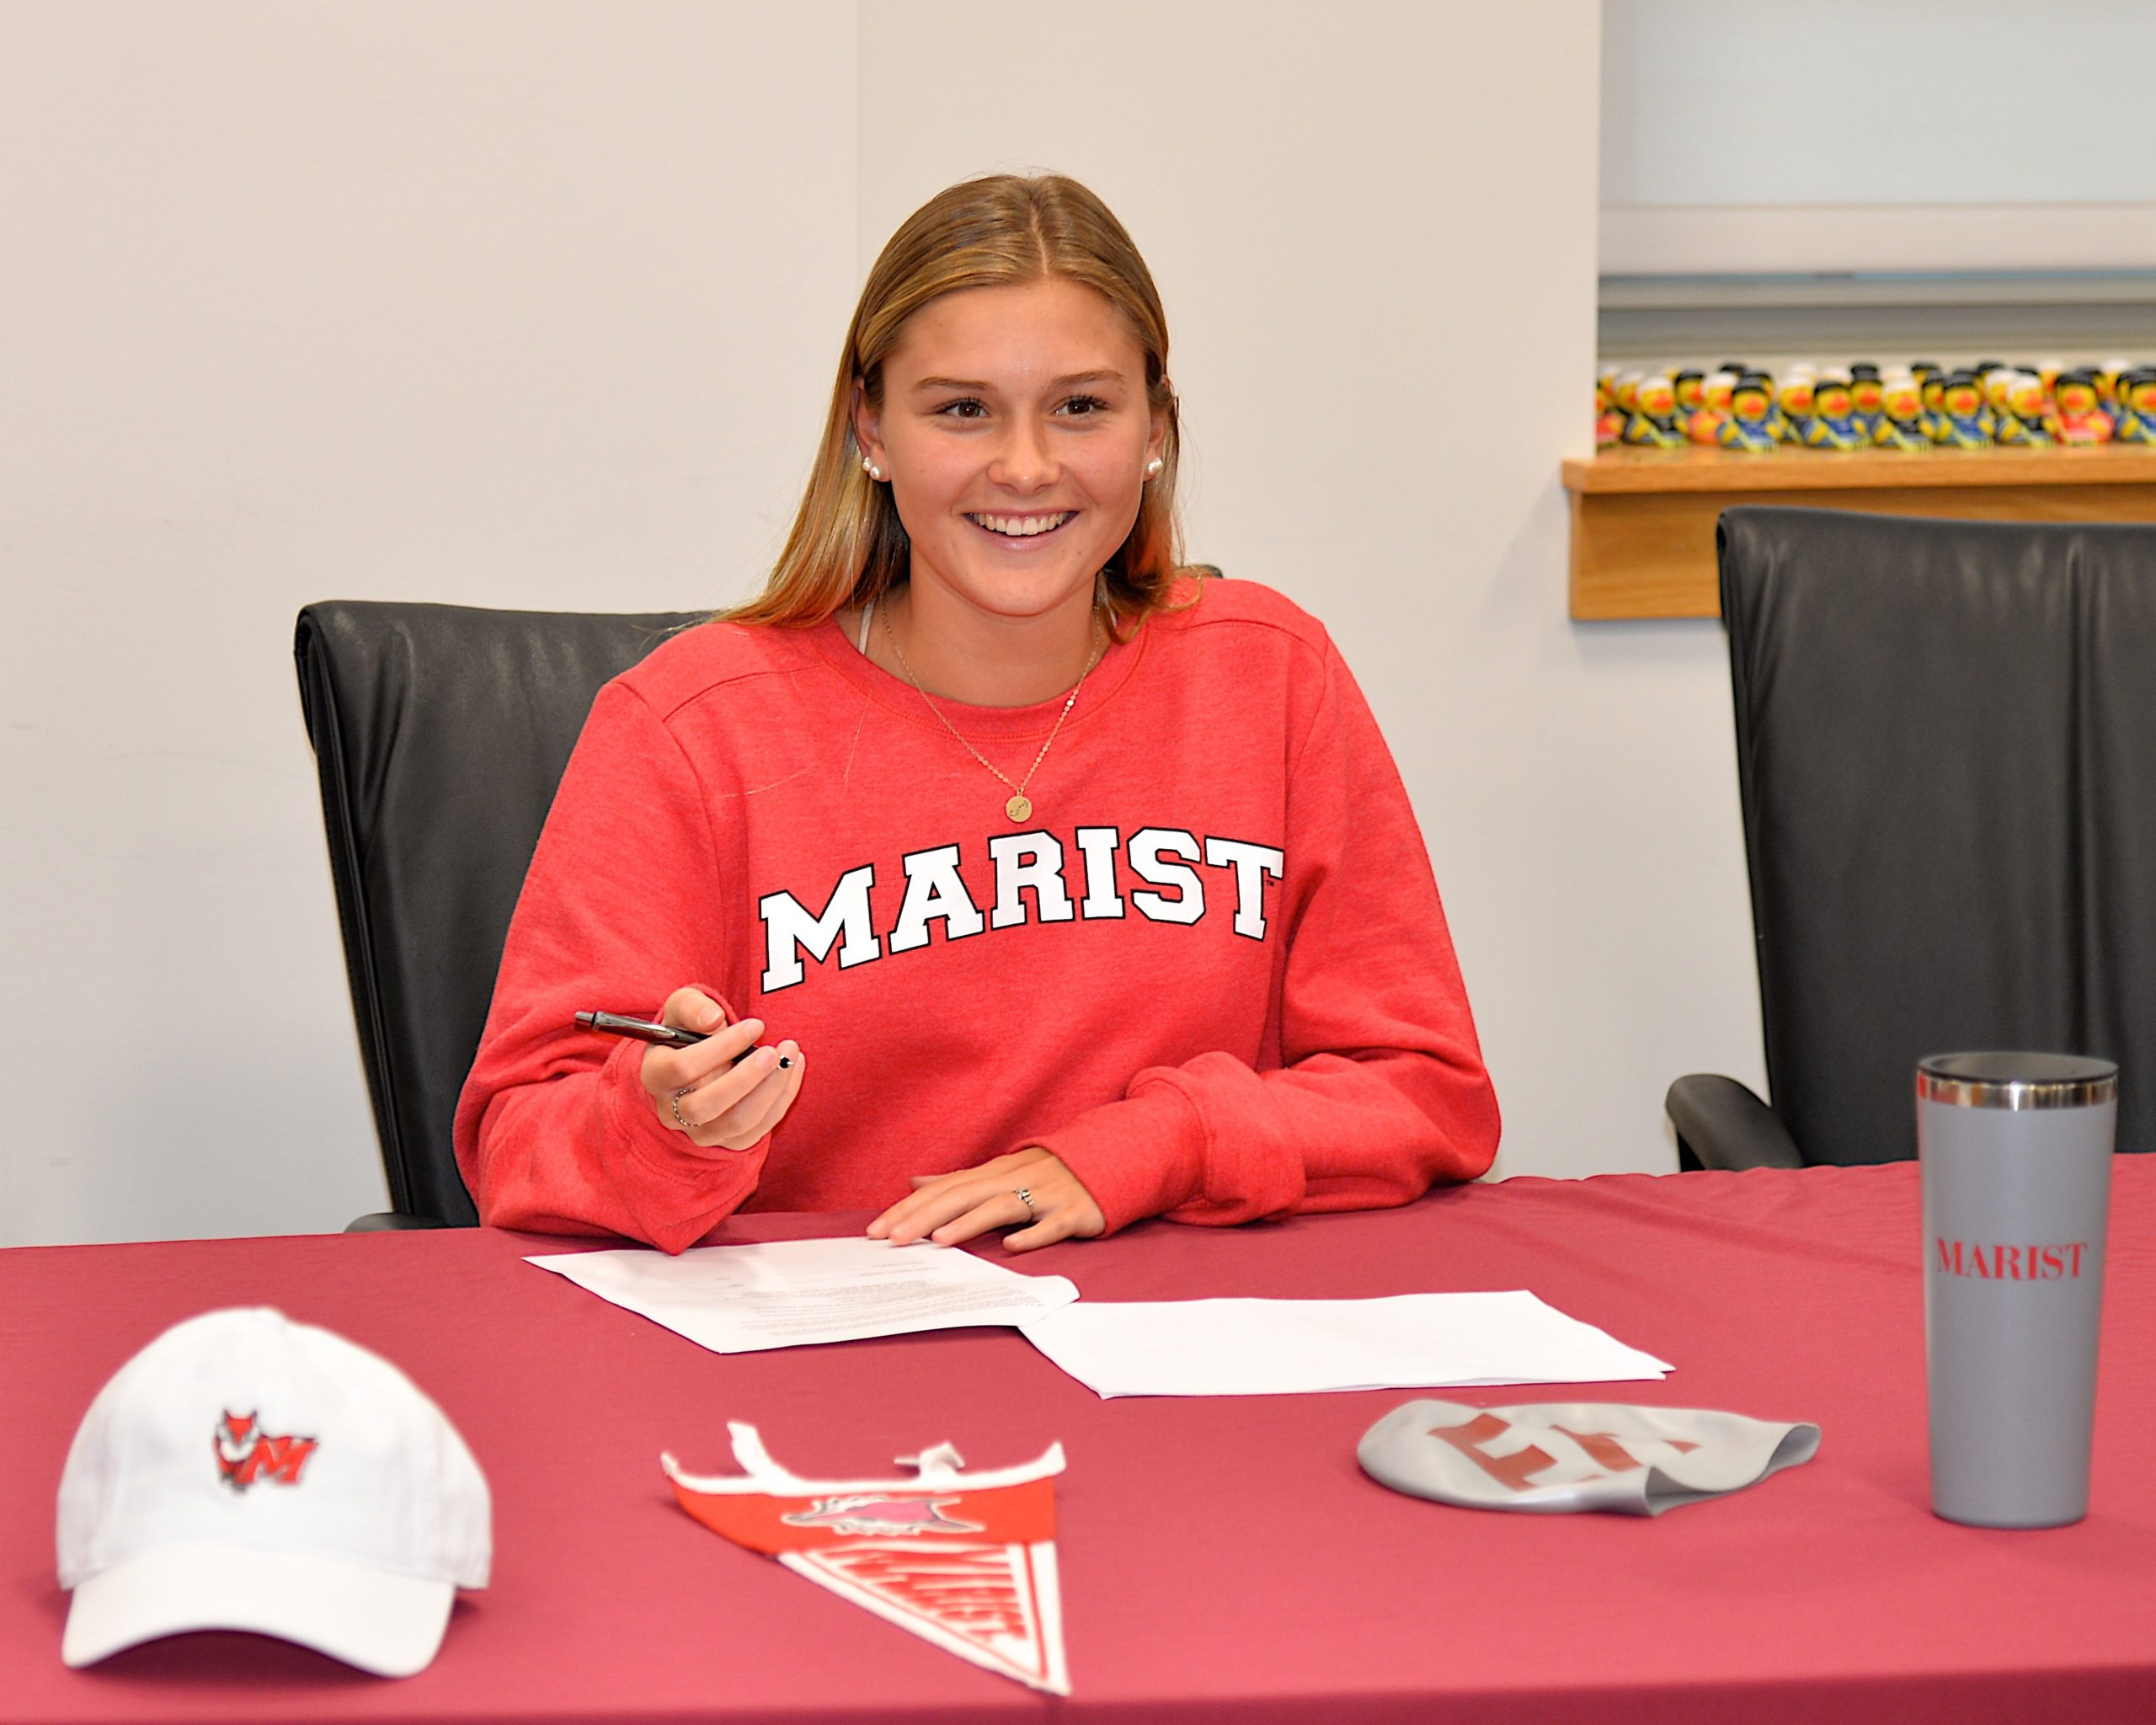 East Hampton senior Sophia Swanson made it official on Tuesday afternoon, committing to Marist College to continue her swim career.